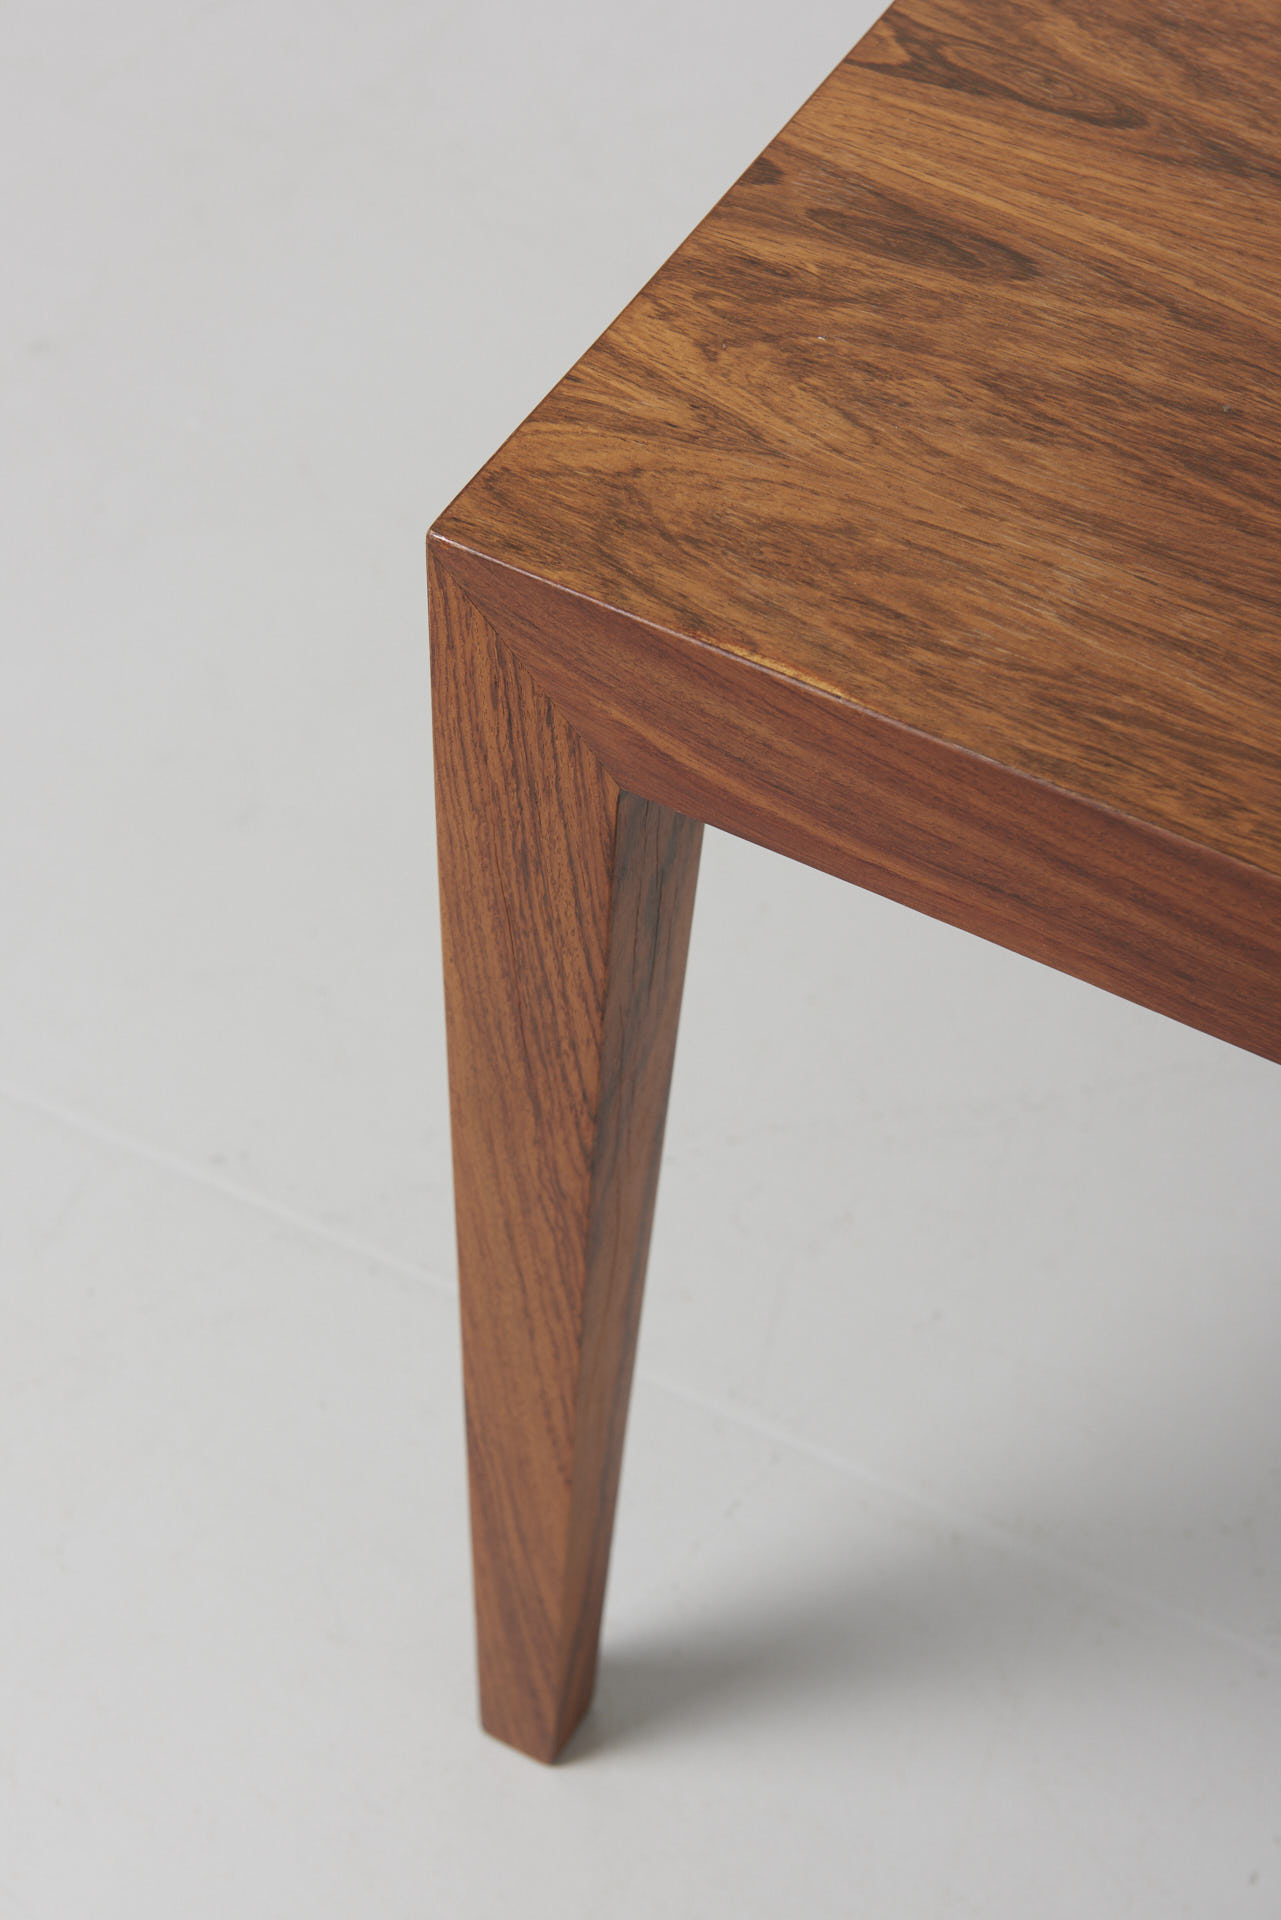 modest furniture vintage 1853 severin hansen side table rosewood 02